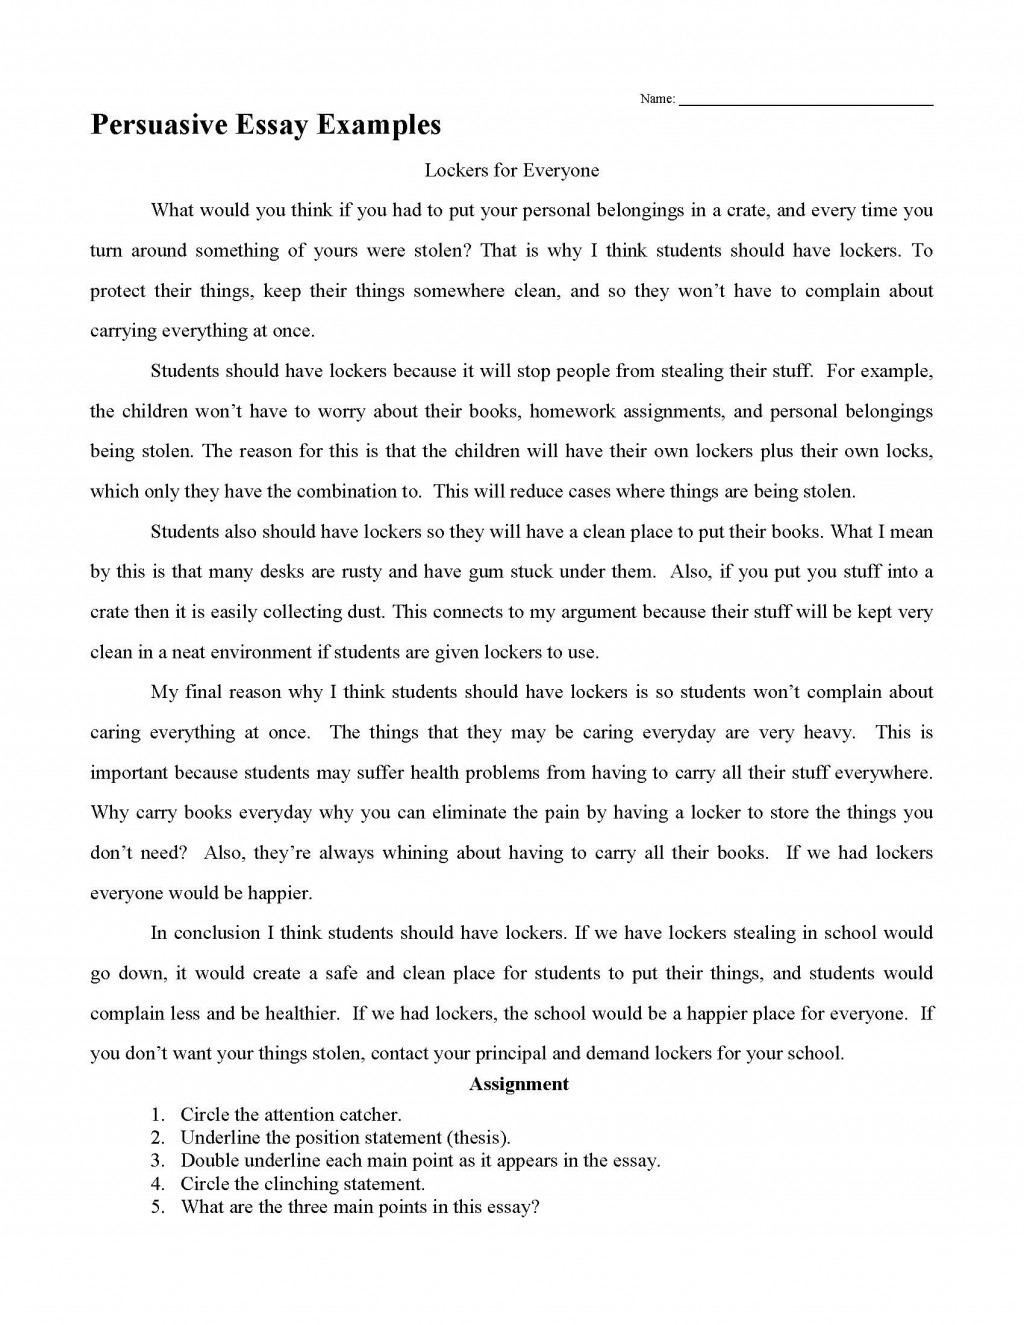 001 Persuasive Essays Impressive Essay Examples For Middle School Staar Large